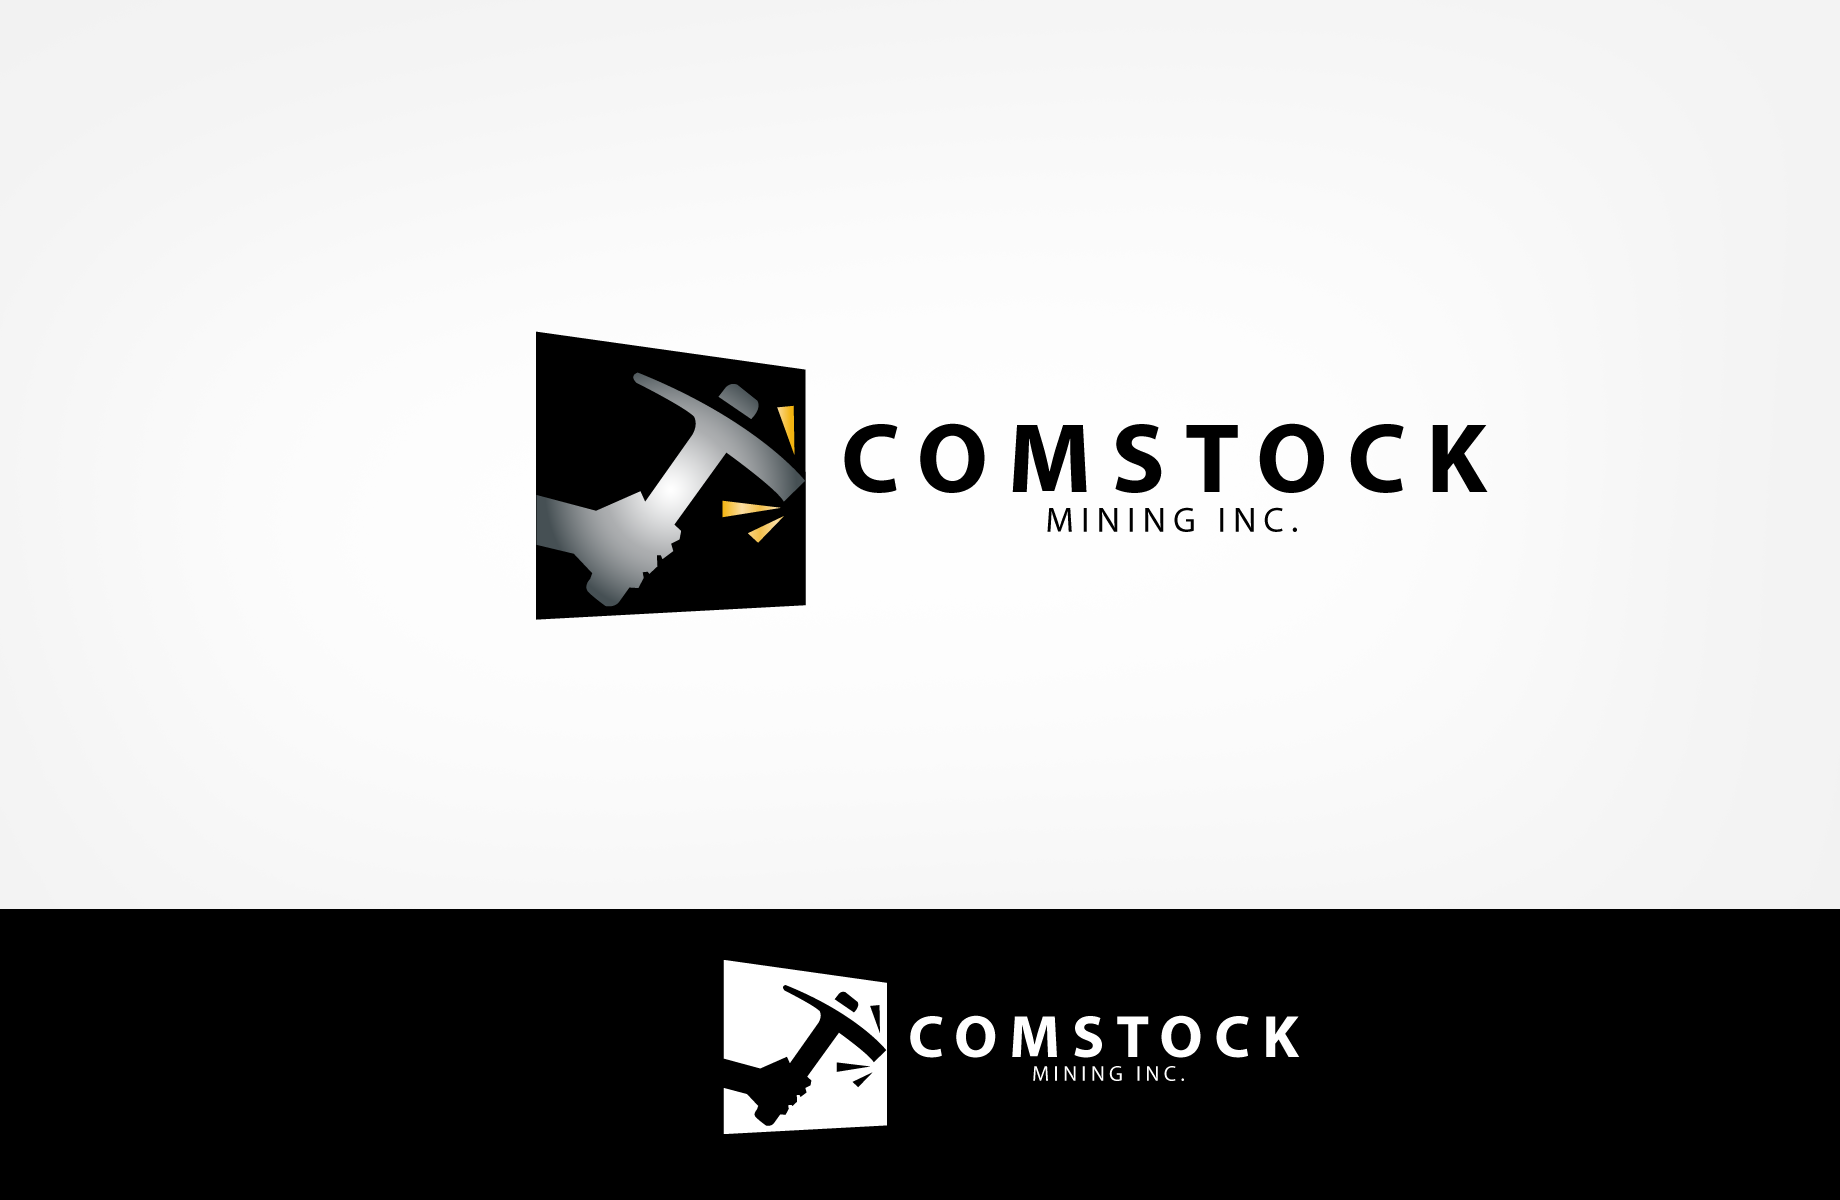 Logo Design by Jan Chua - Entry No. 94 in the Logo Design Contest Captivating Logo Design for Comstock Mining, Inc..